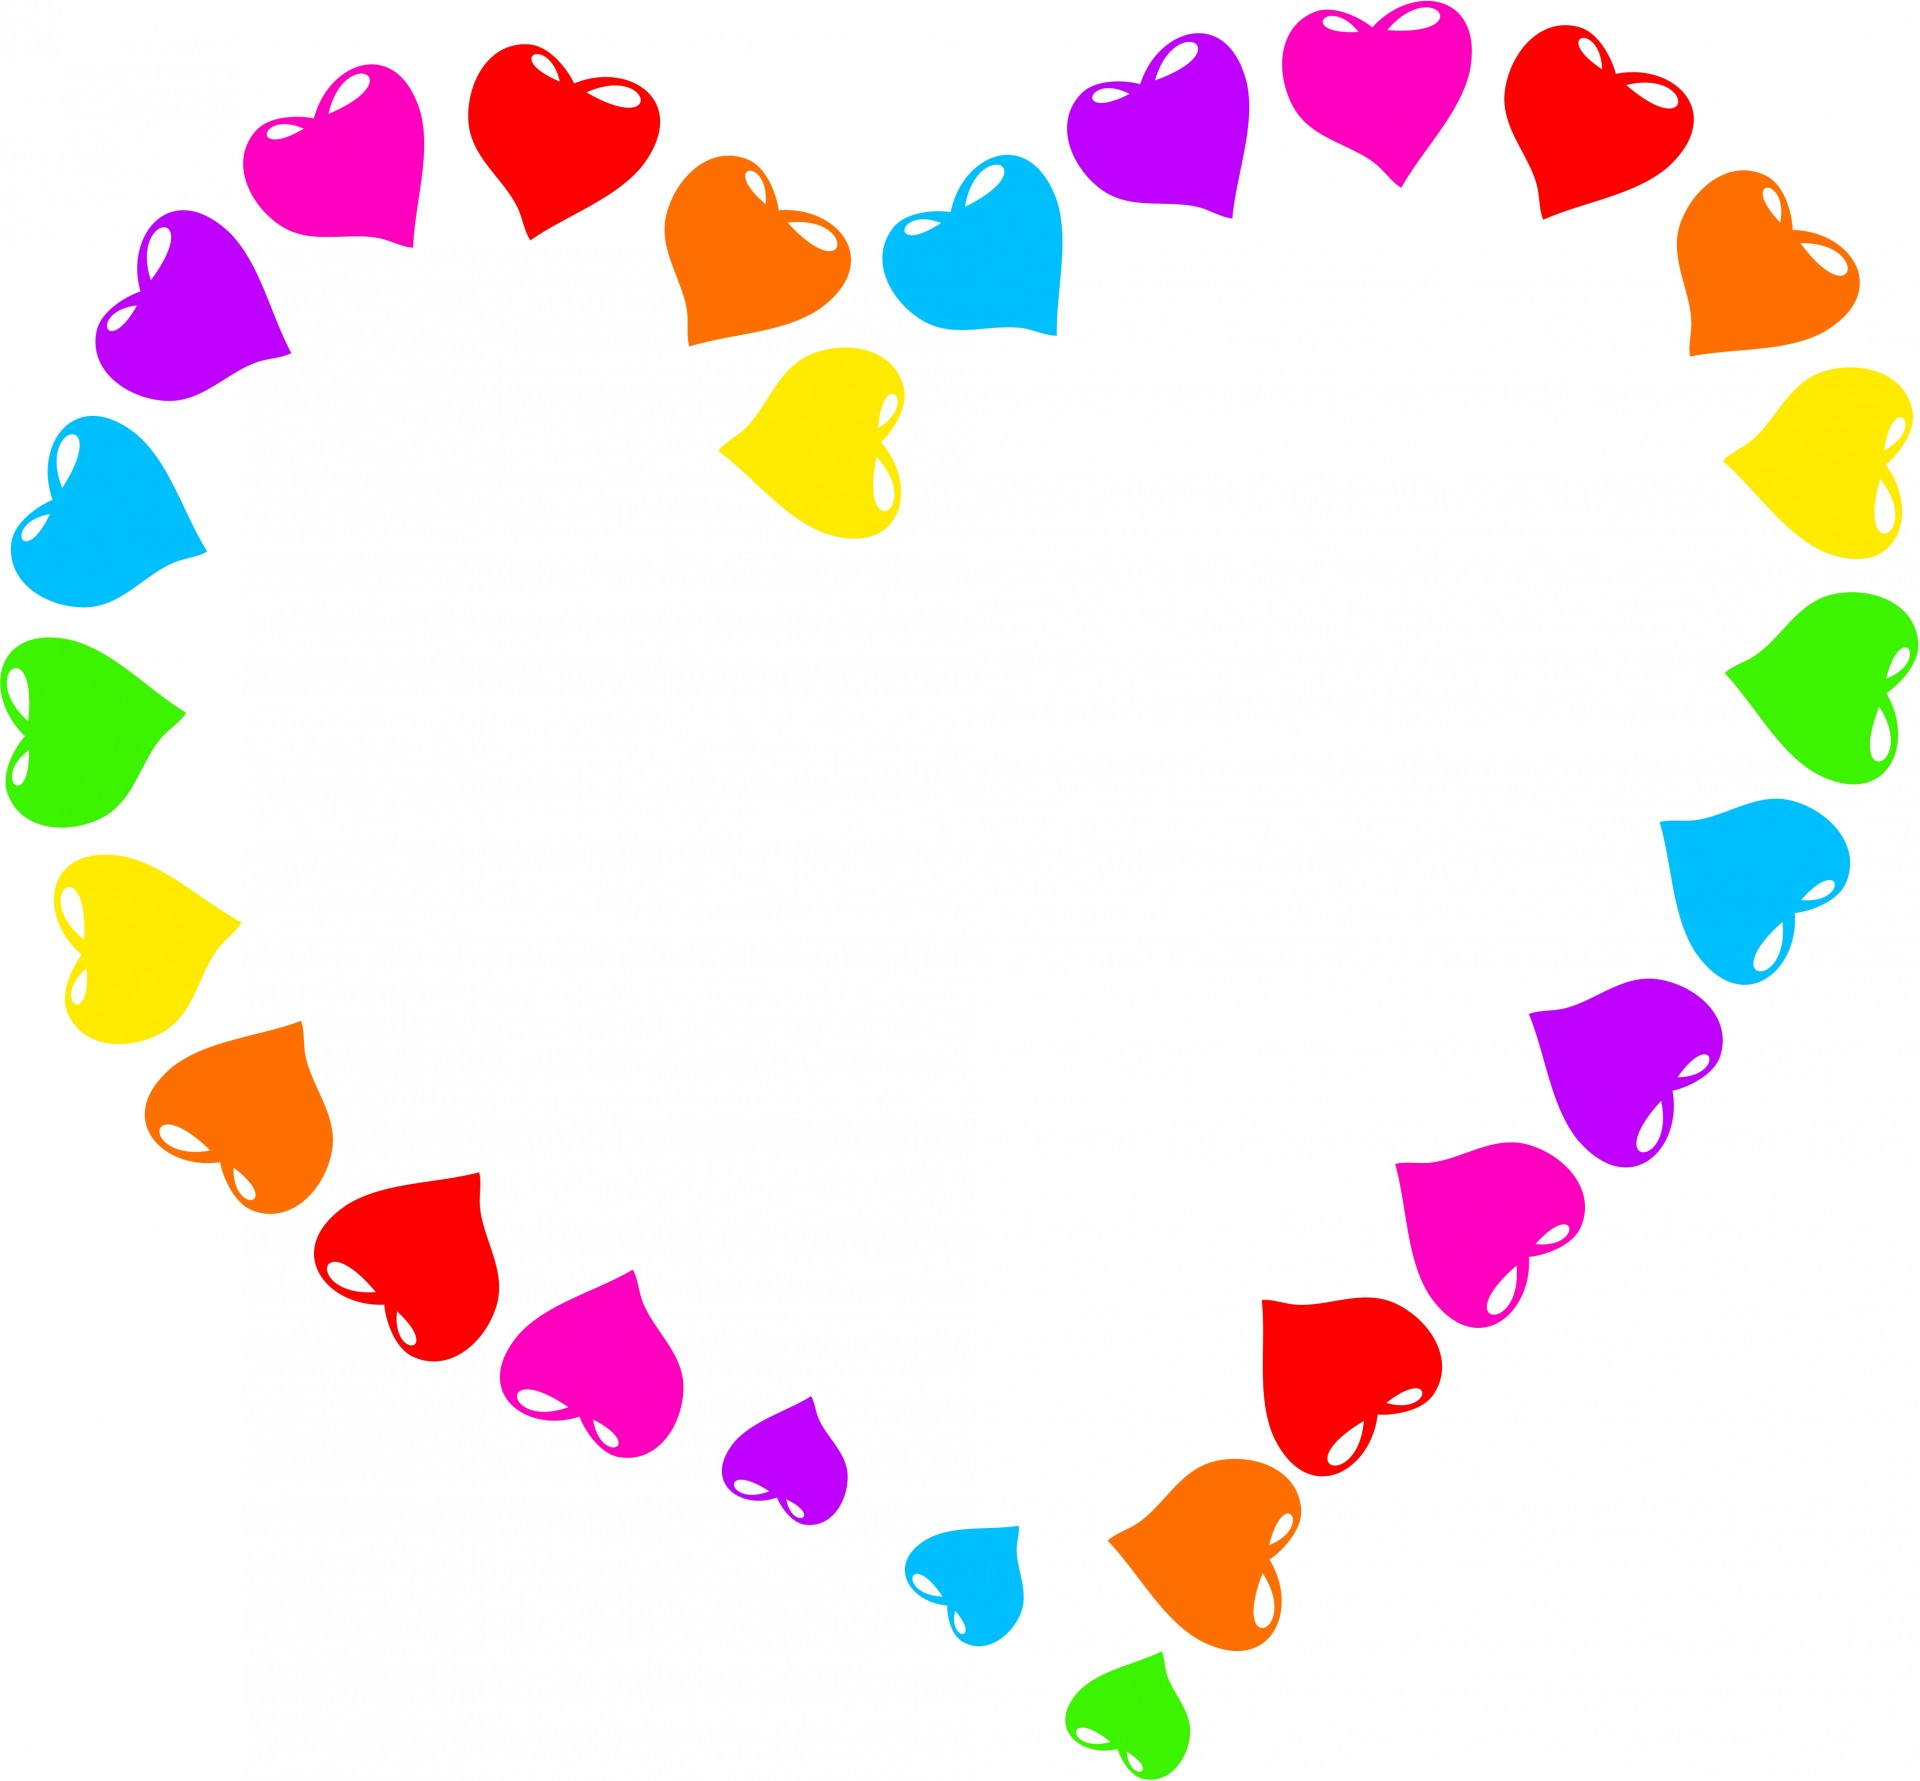 Heart clipart. Rainbow free stock photo